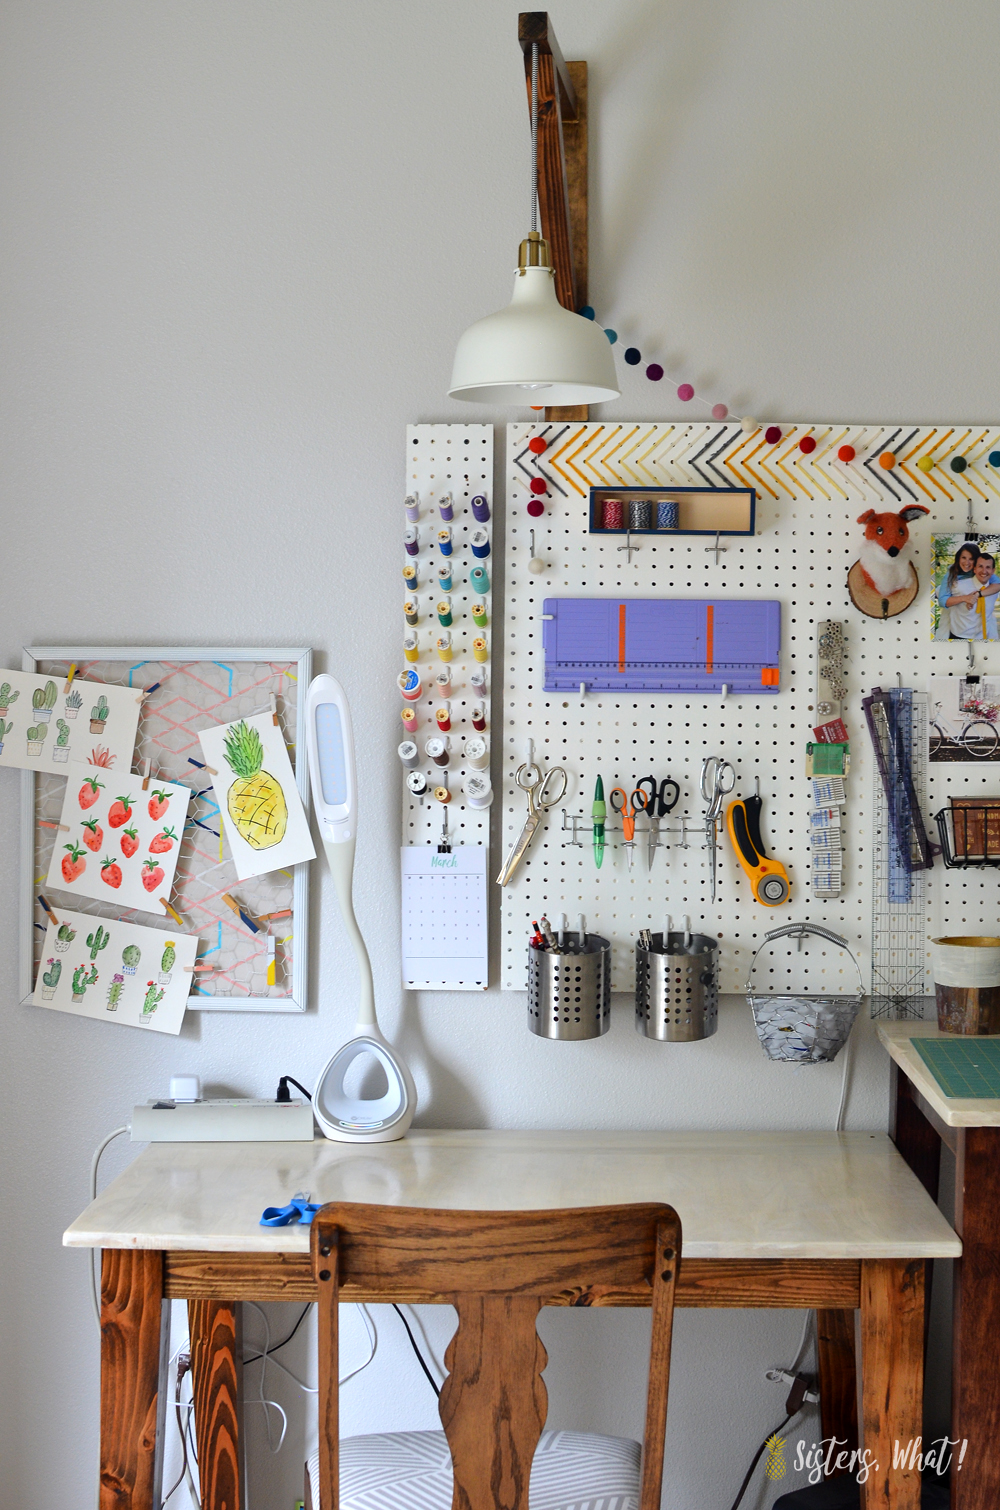 a fun craft area using a pegboard as craft storage and sewing supply storage